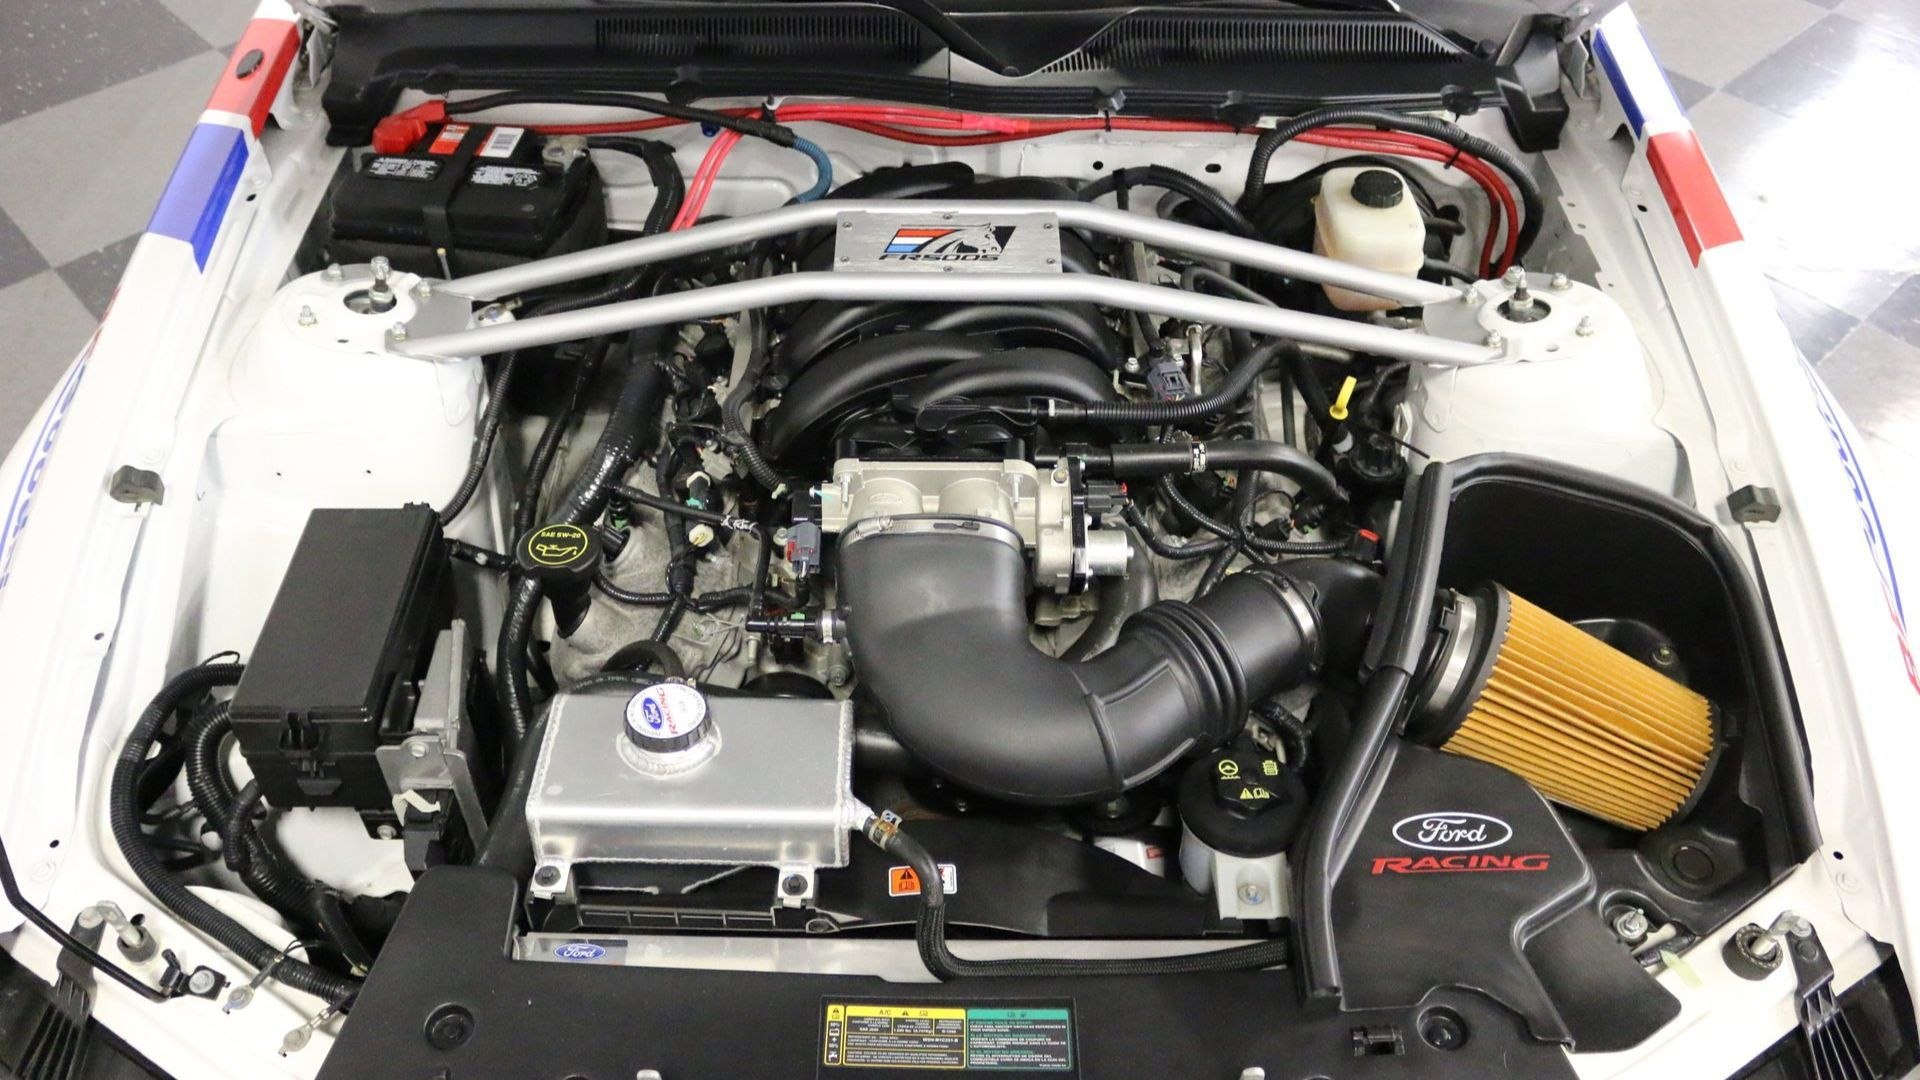 2008 Ford Mustang GT FR500S Has Never Been Raced